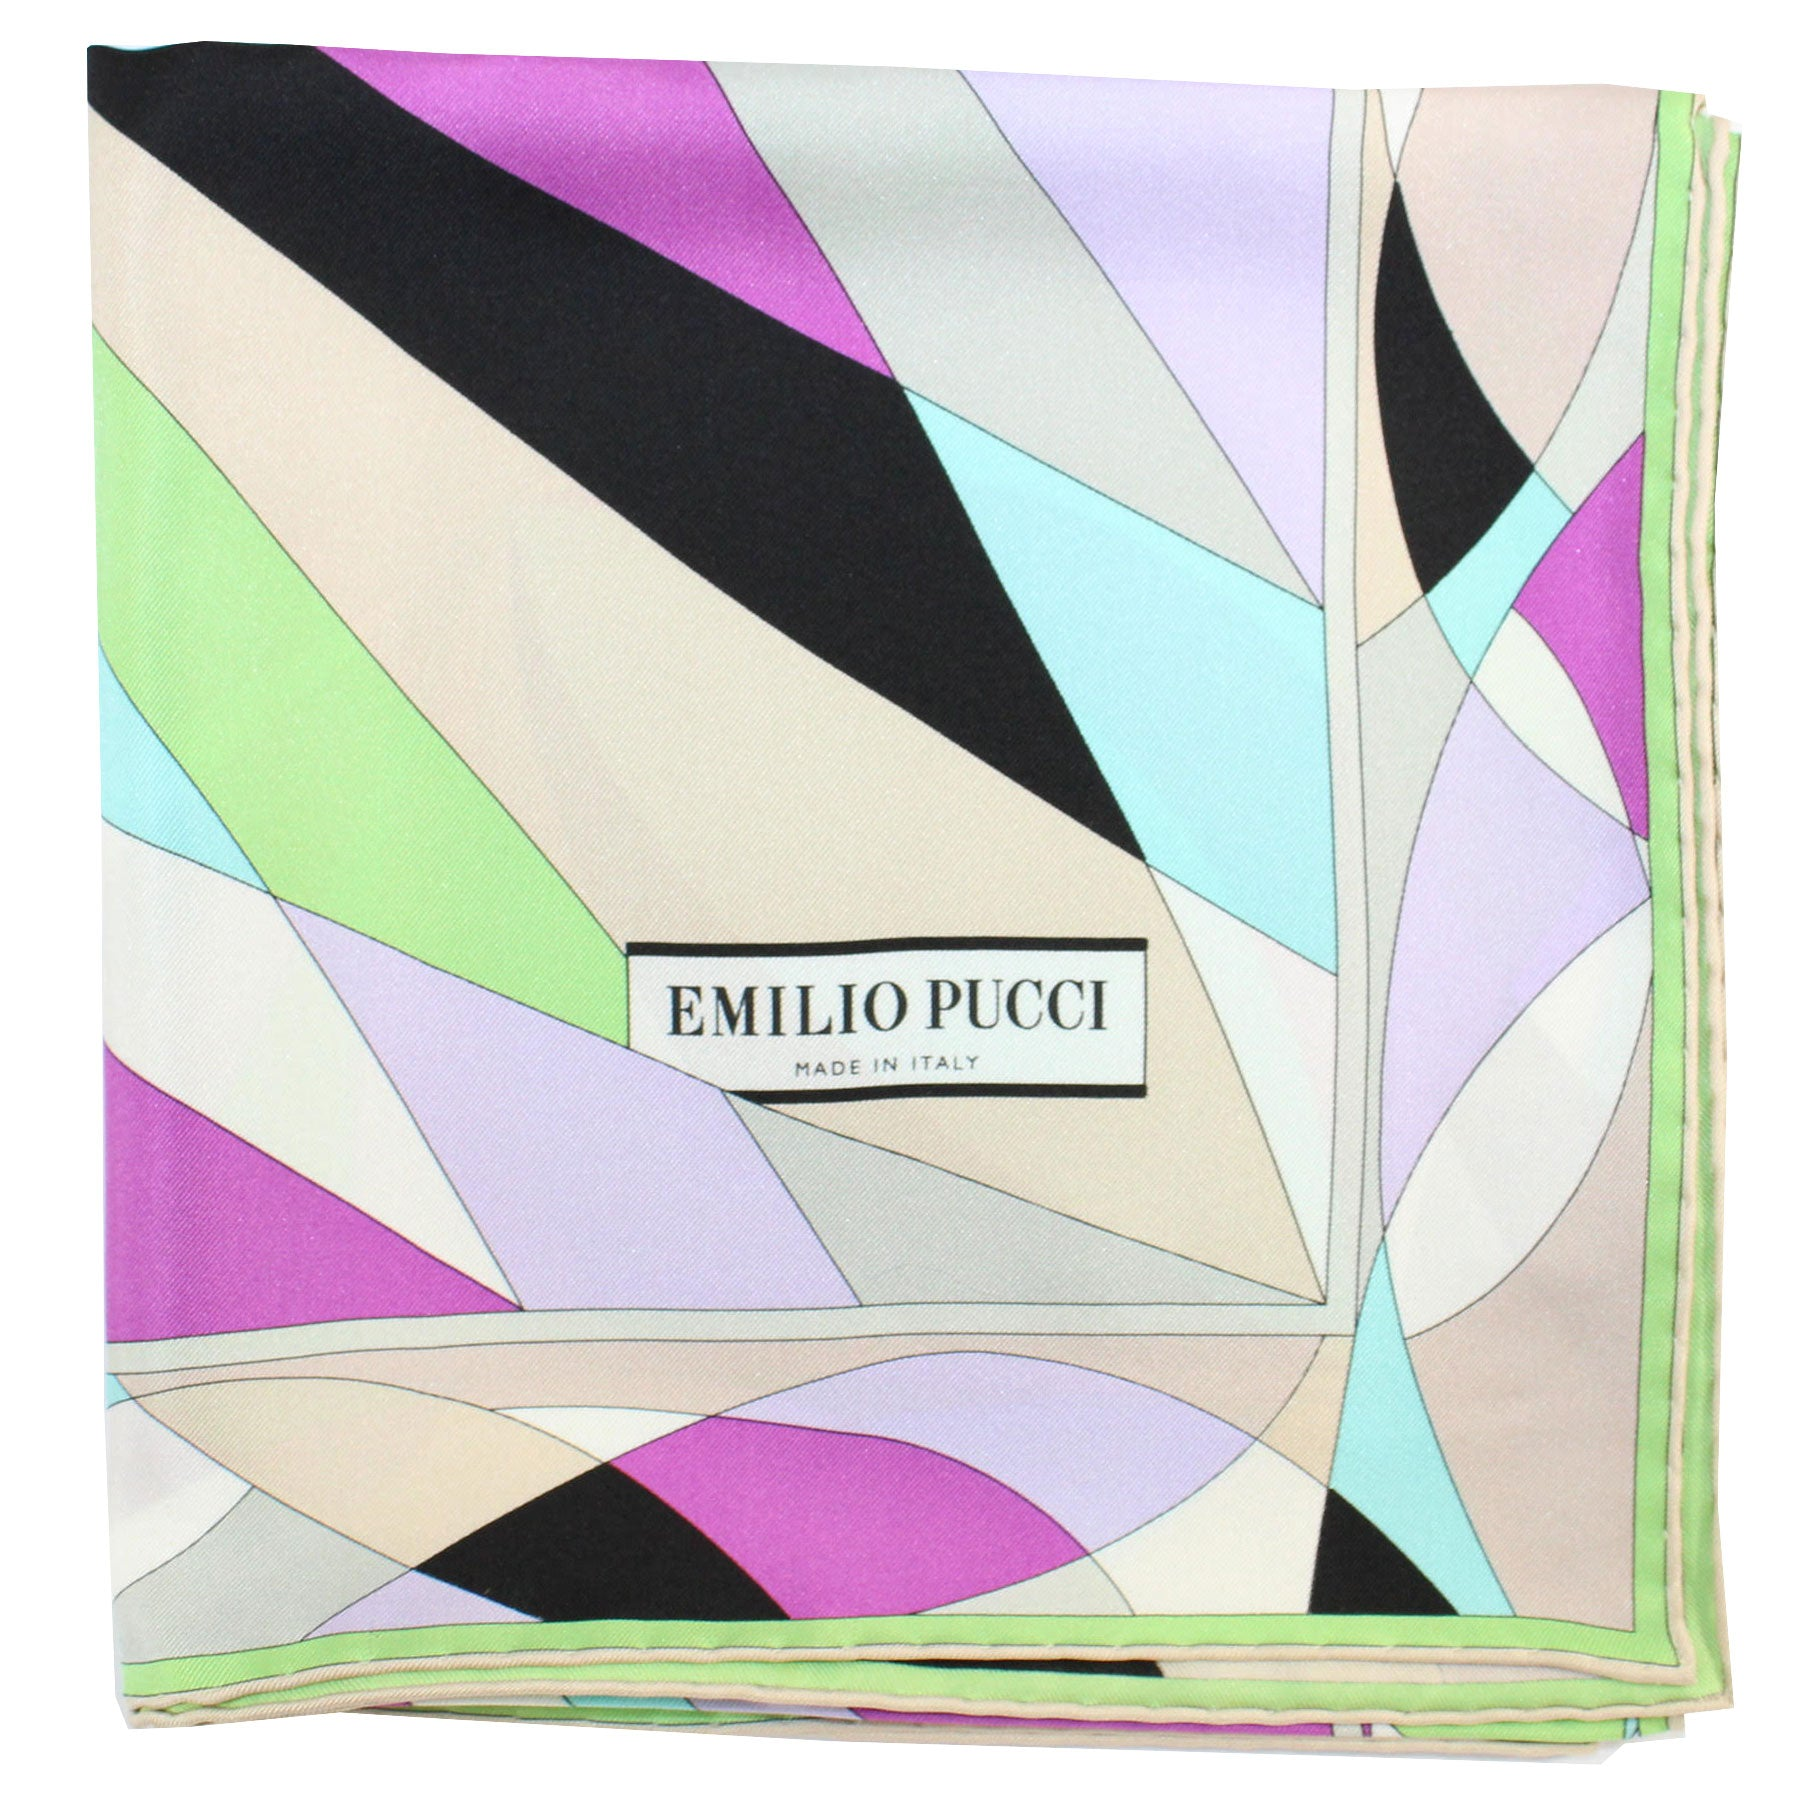 Emilio Pucci Silk Scarf Purple Lilac Lime Design - Large Twill Silk Square Scarf